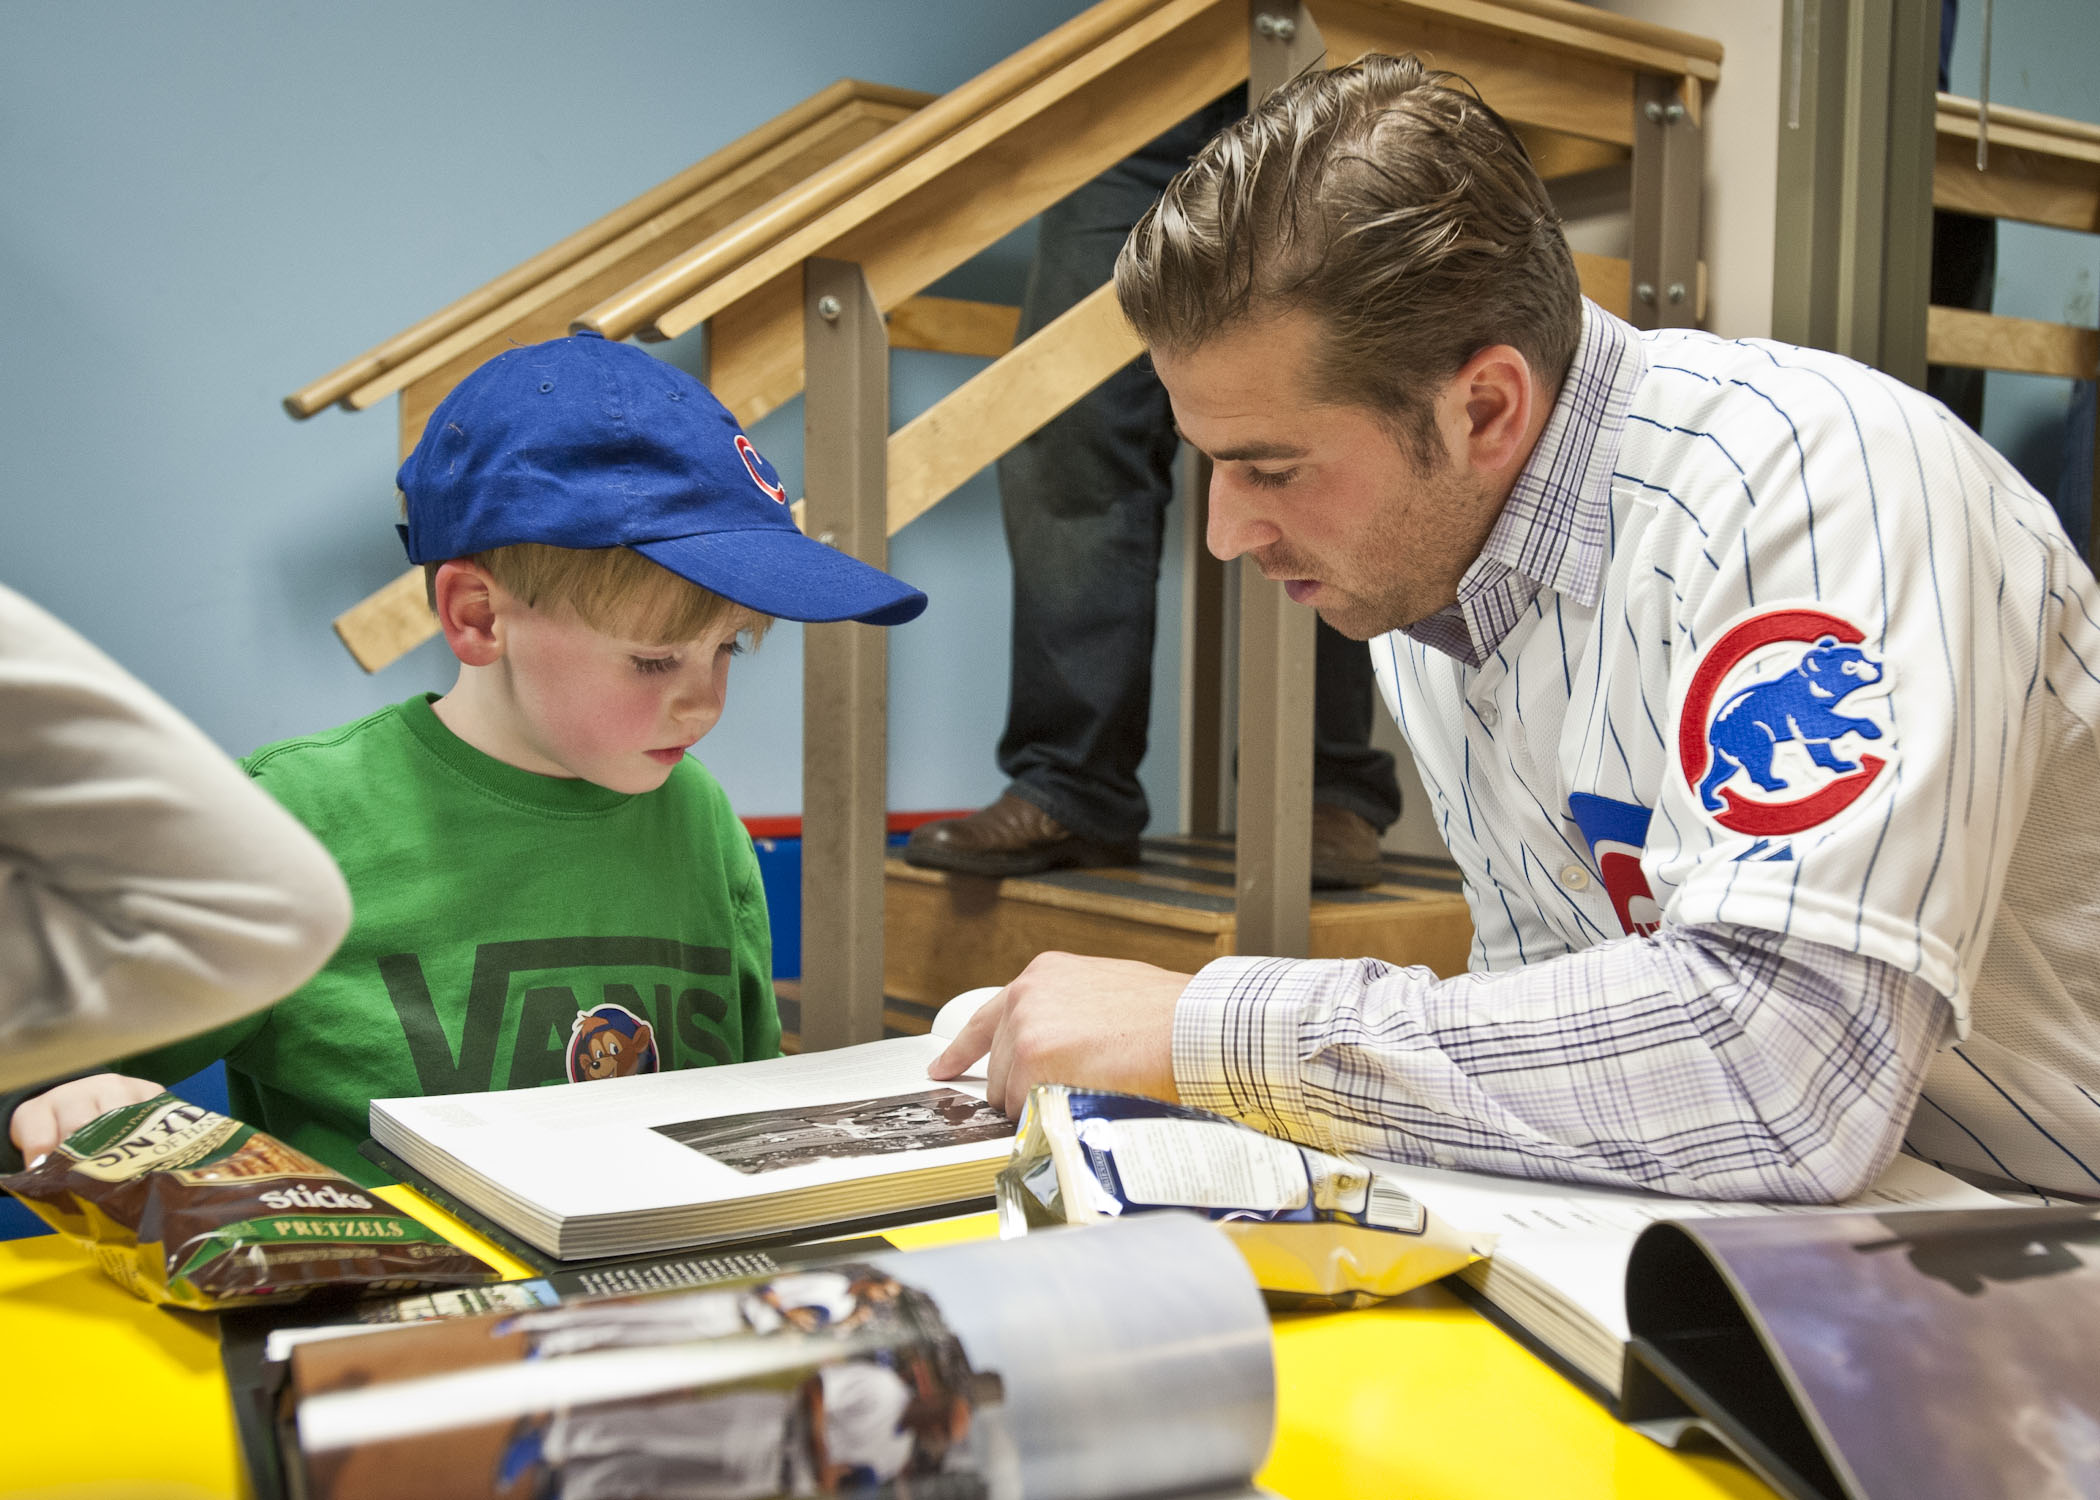 Cubs prospect Mike Olt gets in some reading time with one little boy.